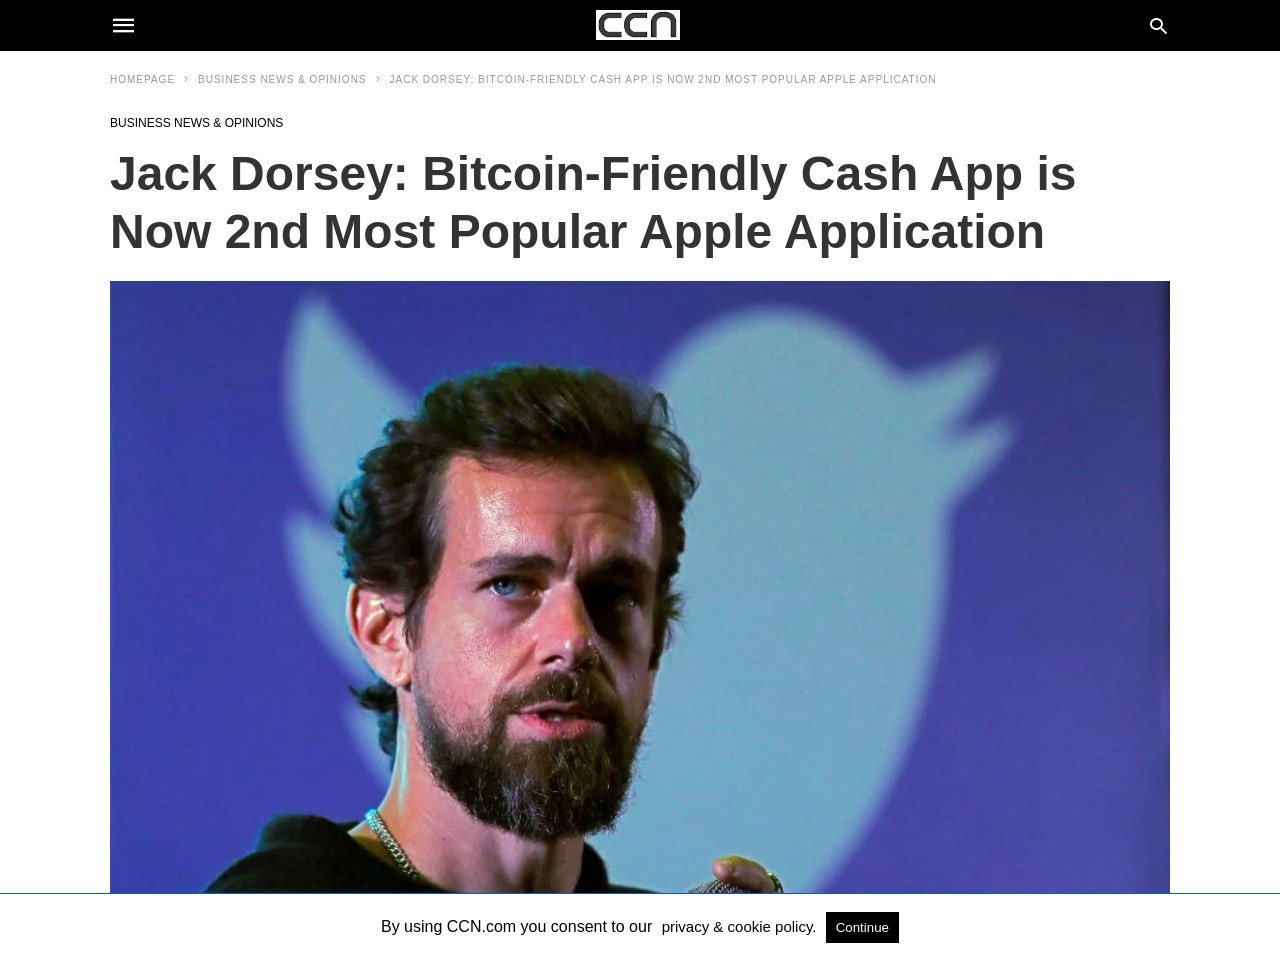 Jack Dorsey: Bitcoin-Friendly Cash App is Now 2nd Most Popular Apple Application